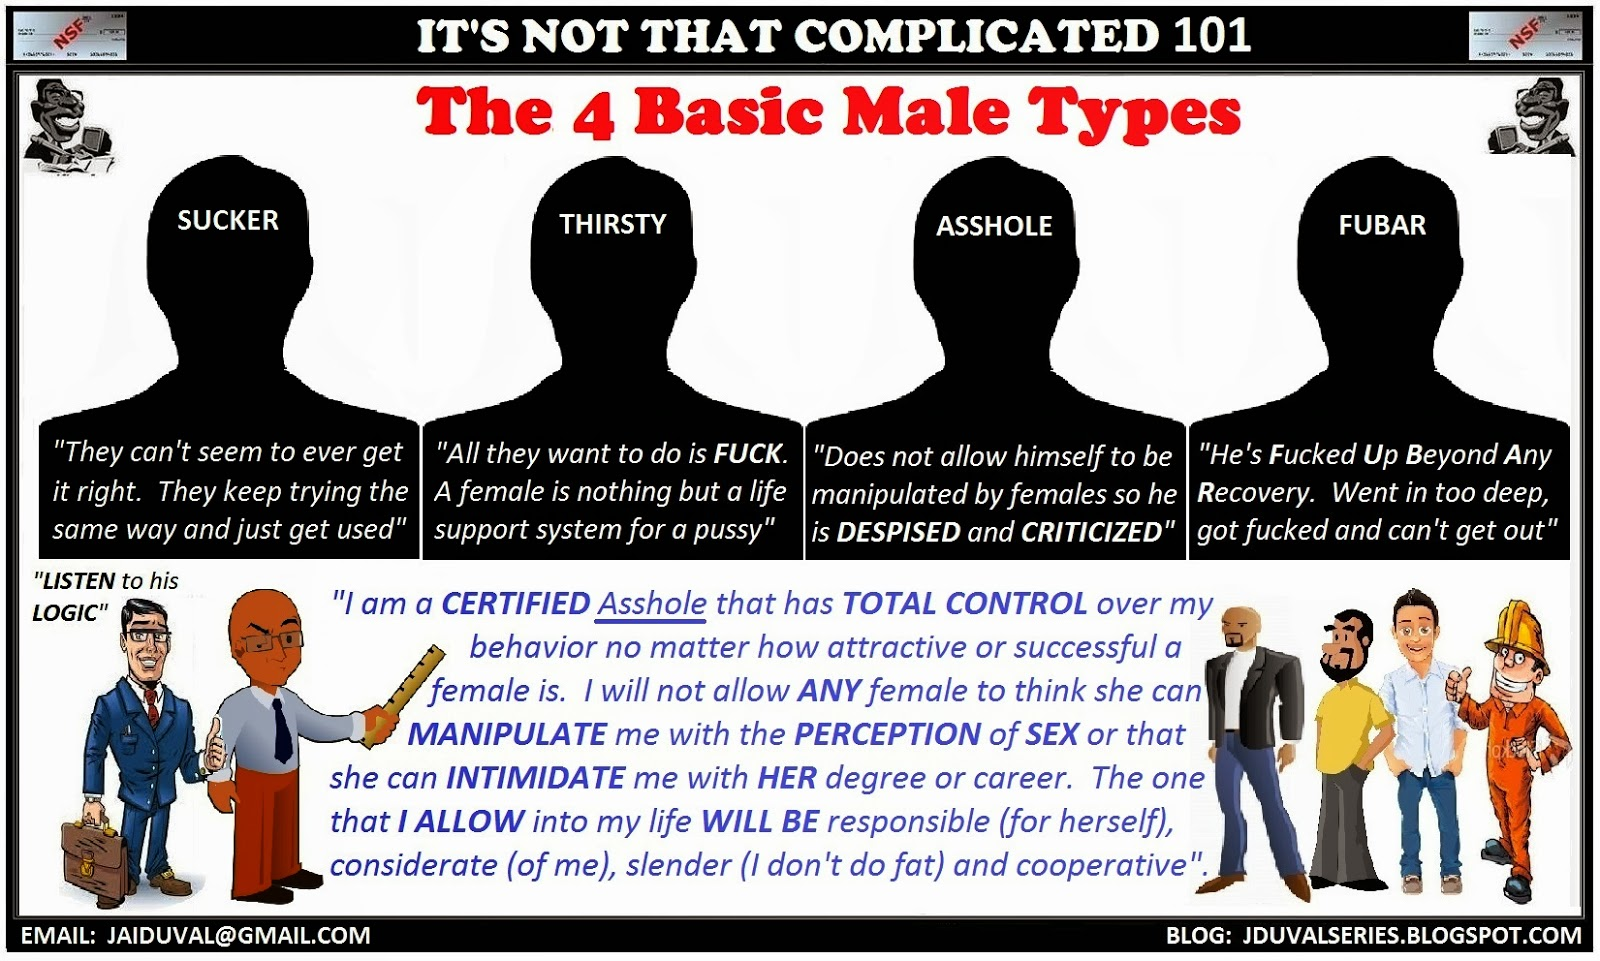 You are not all complicated, he is just an asshole